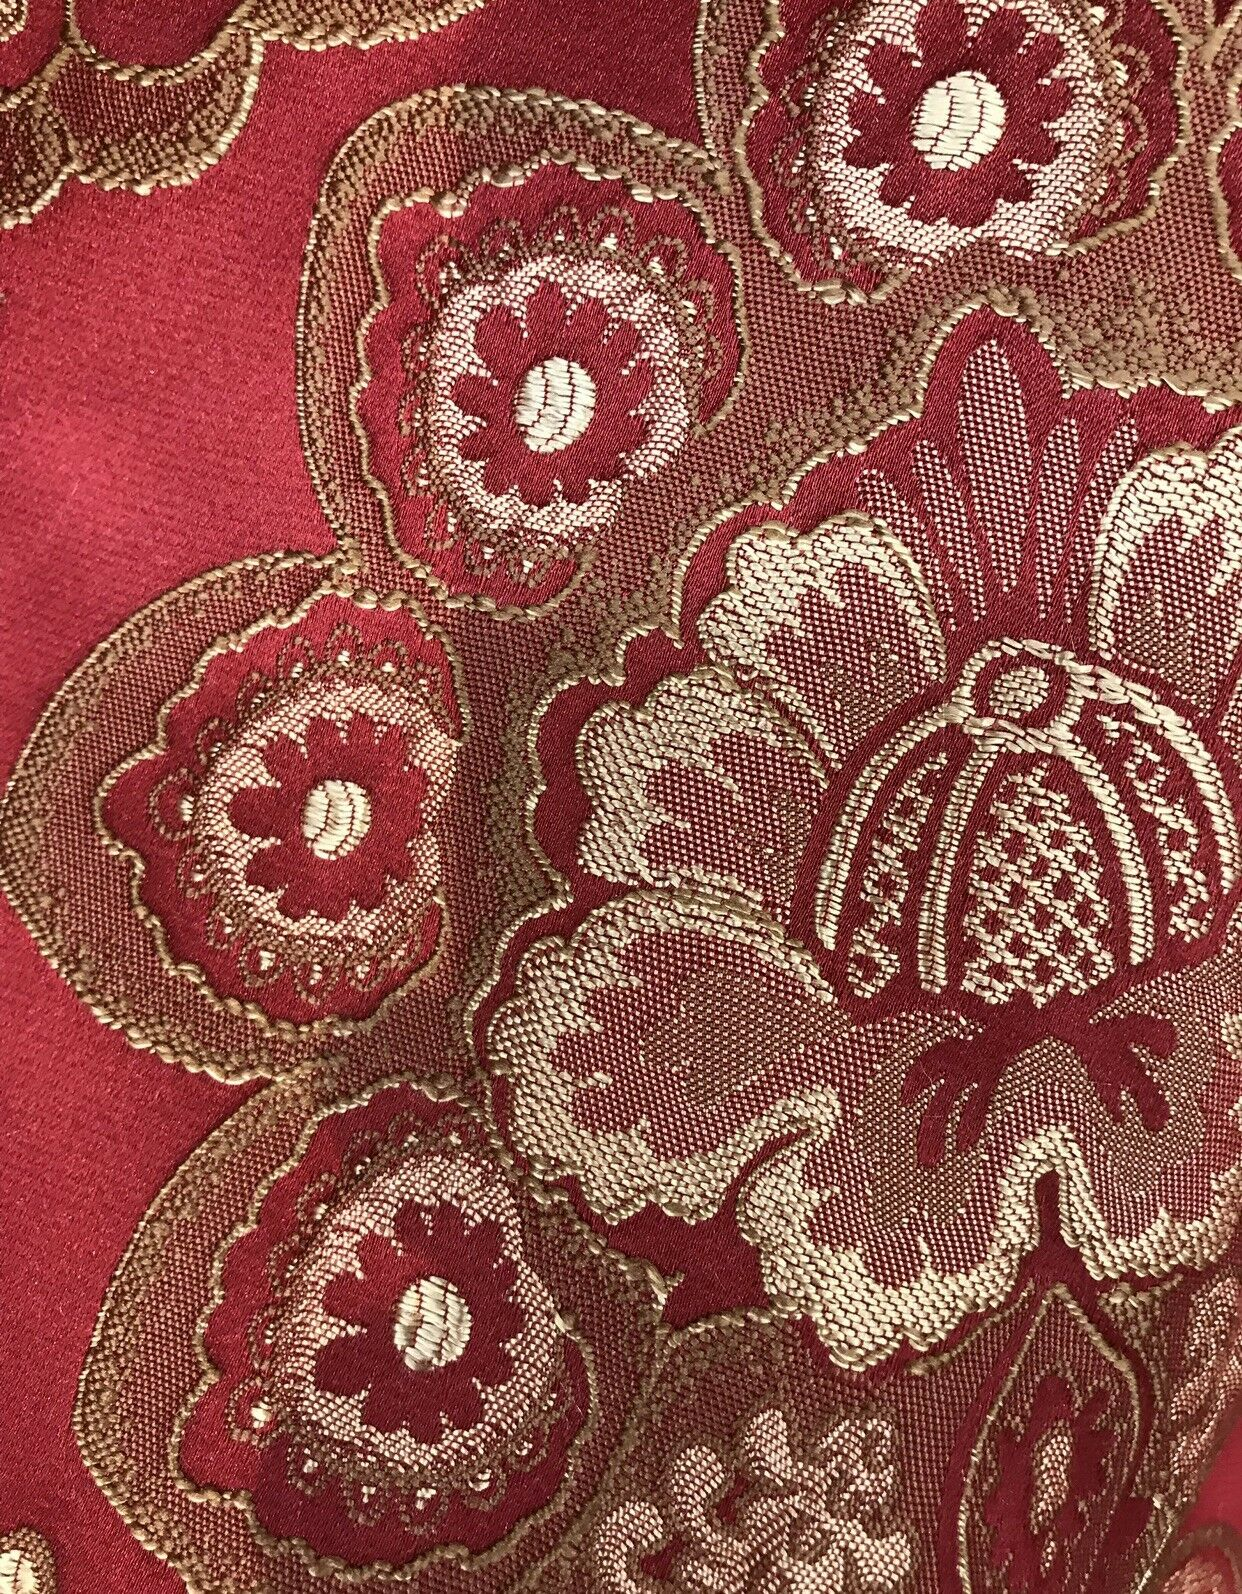 Designer Brocade Satin Fabric- Antique Inspired Red and Gold - Upholstery